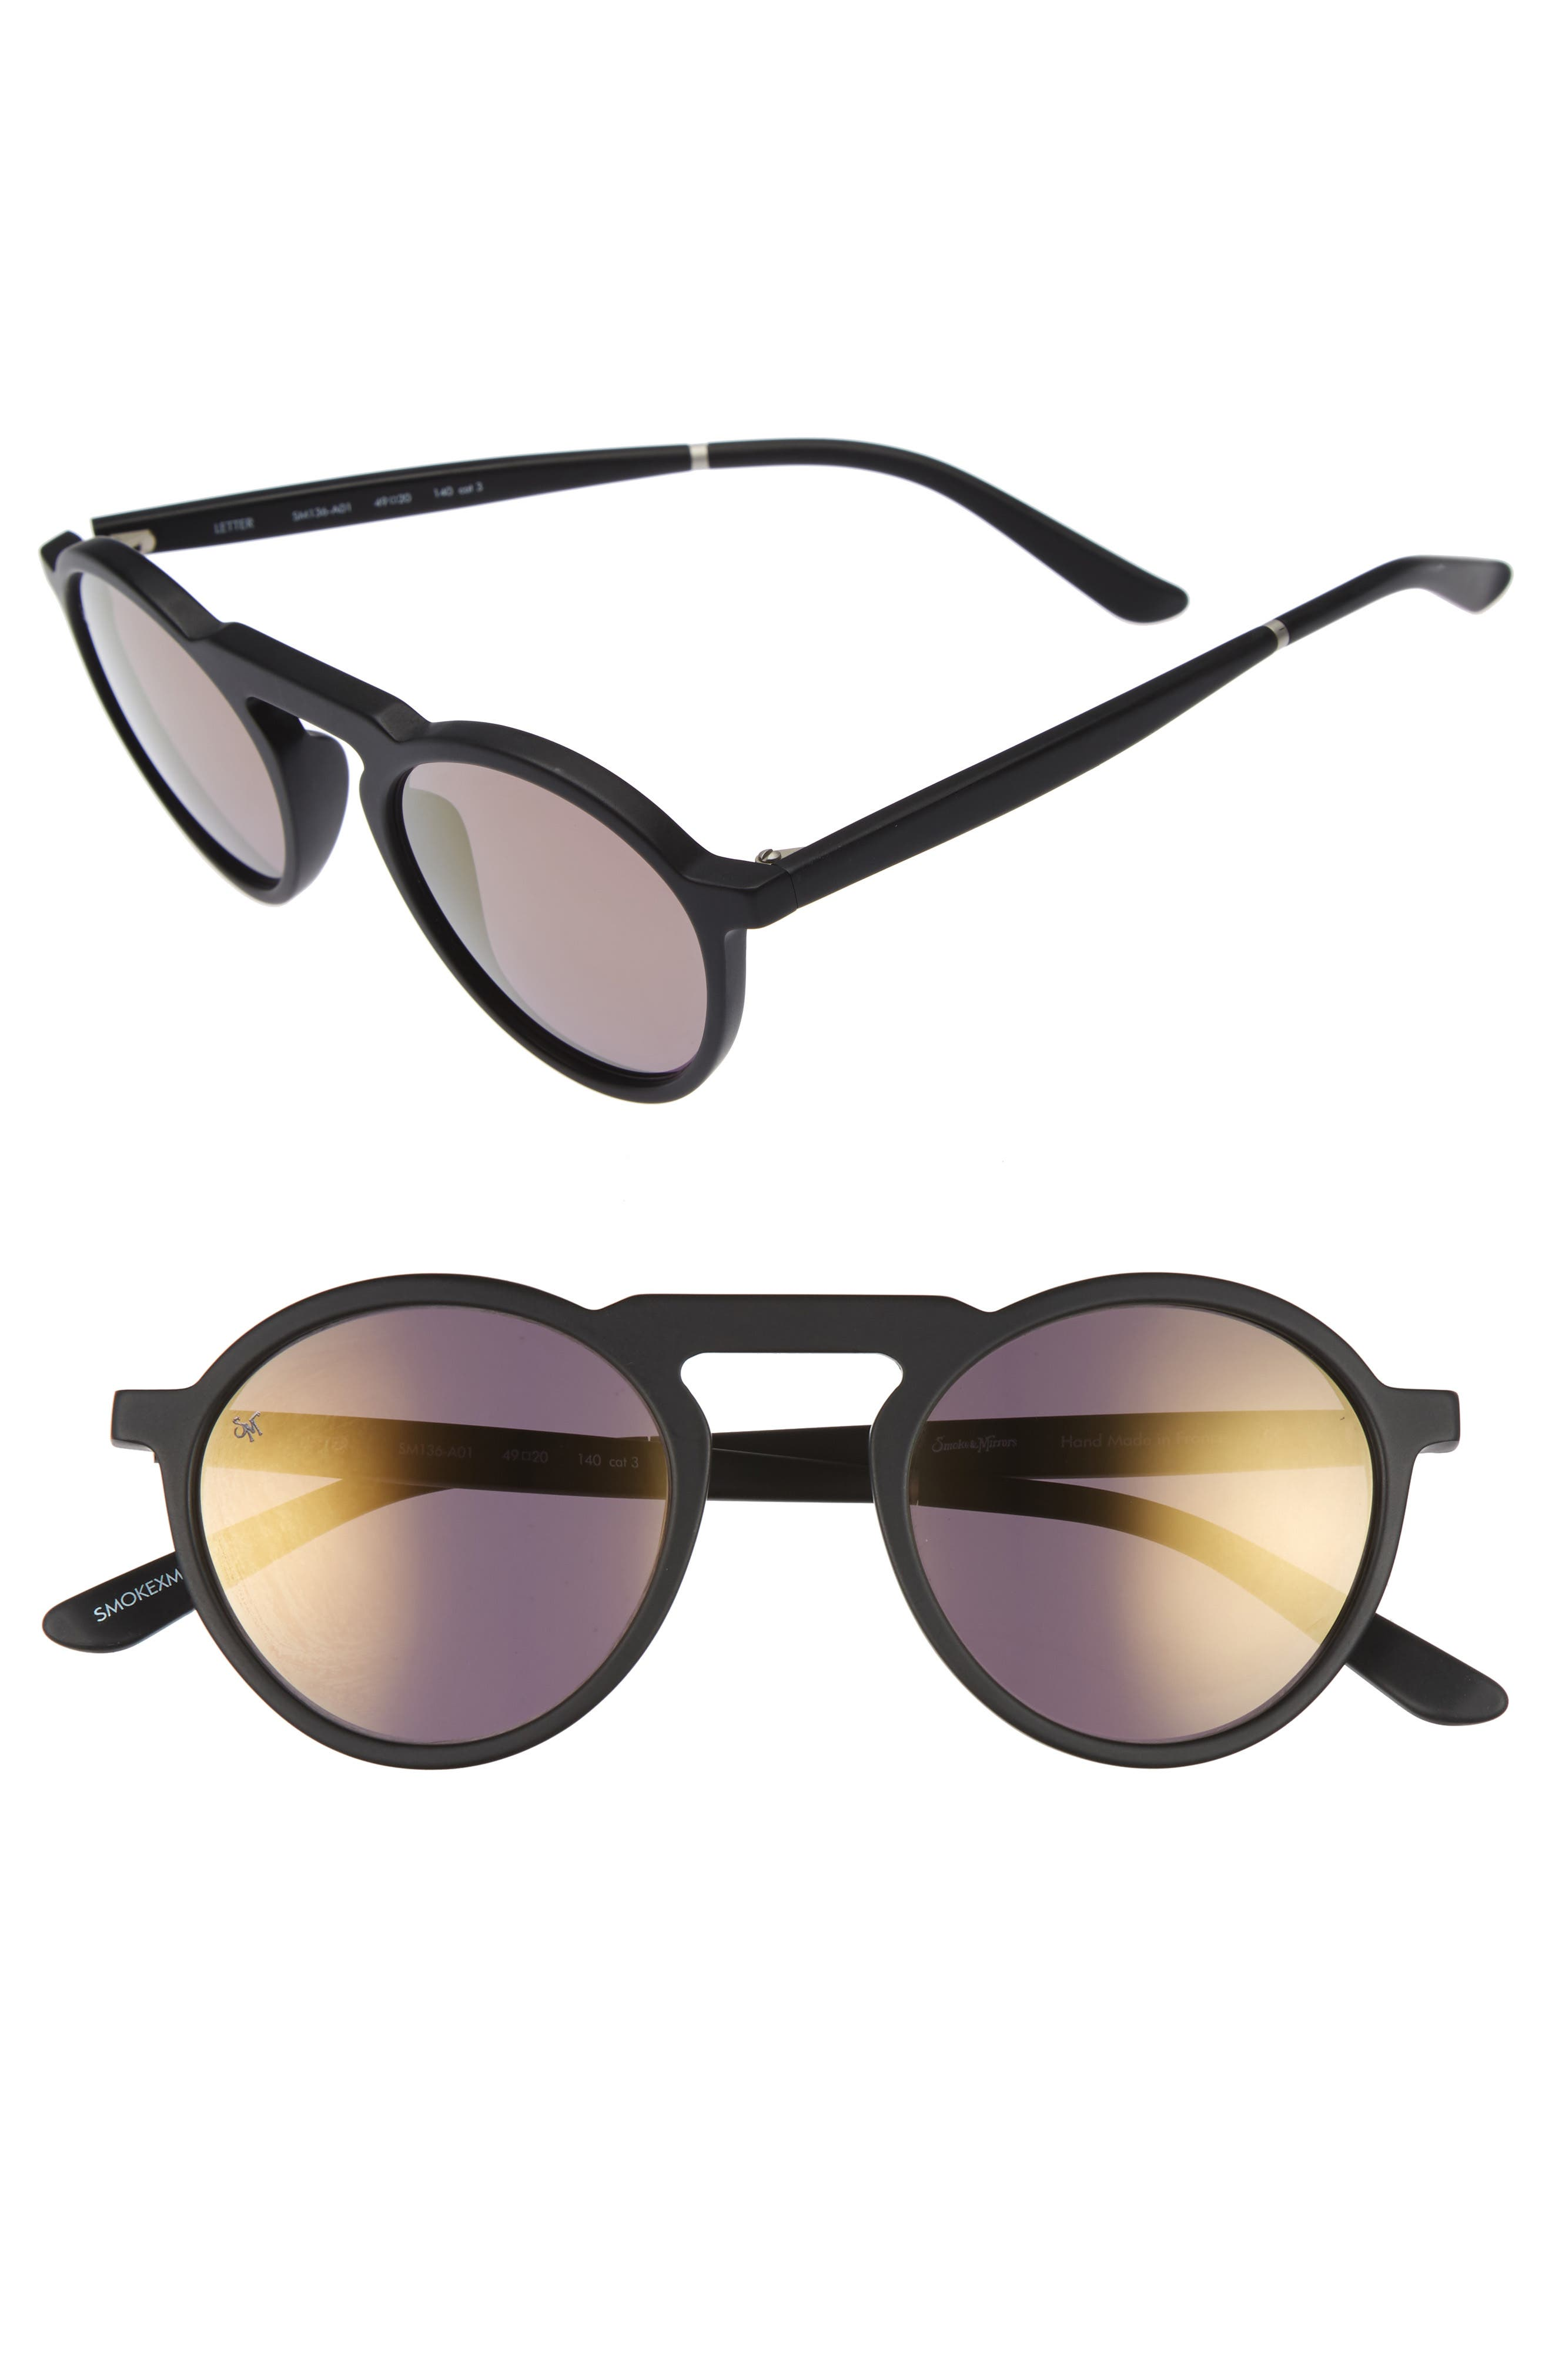 Main Image - SMOKE X MIRRORS Letter 49mm Mirrored Round Sunglasses